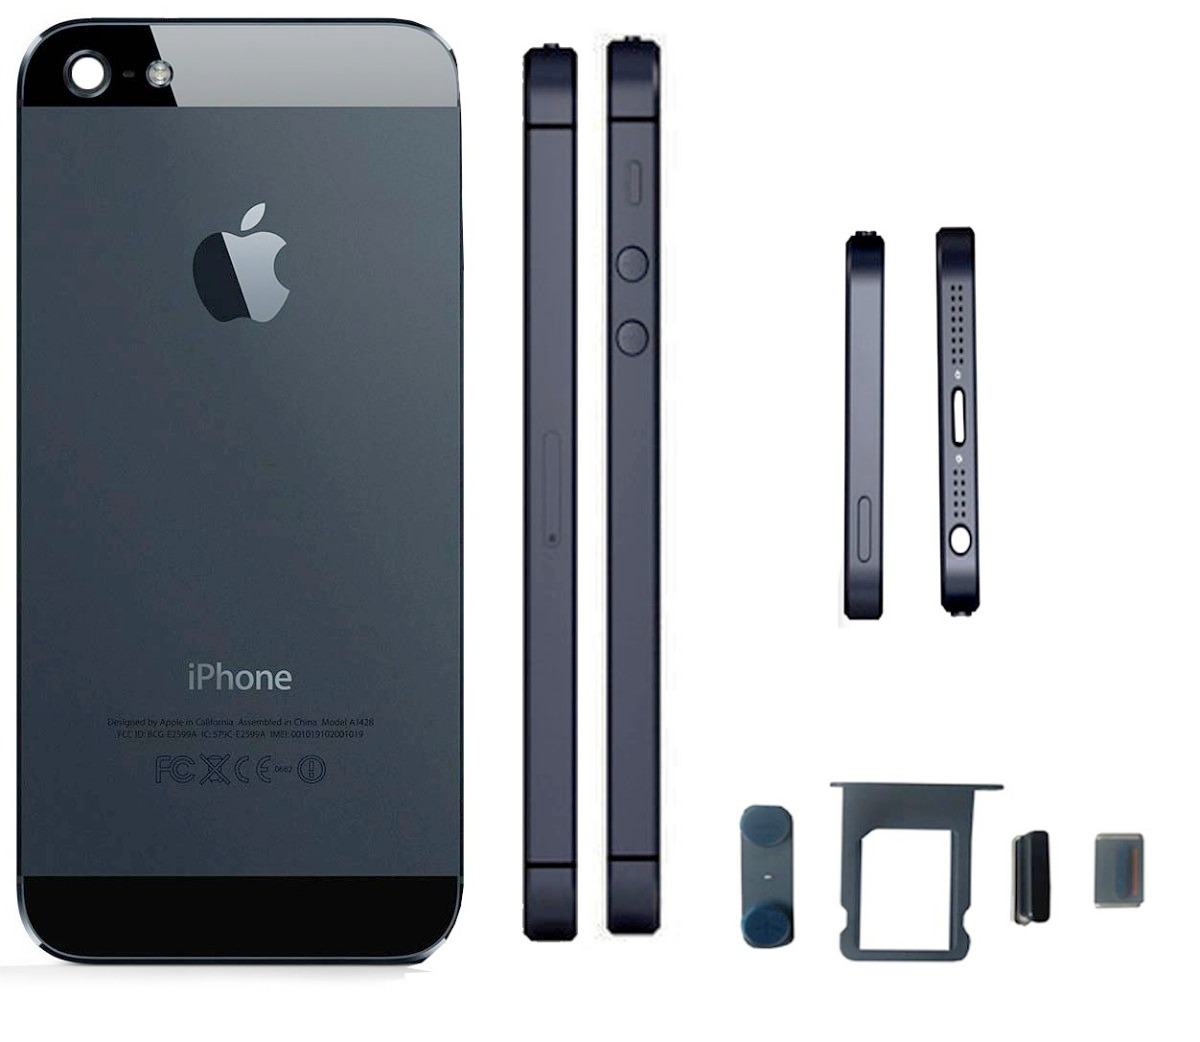 Phone House Iphone 5 Libre Carcasa Iphone 5 5g Negra 43 Botones 270 00 En Mercado